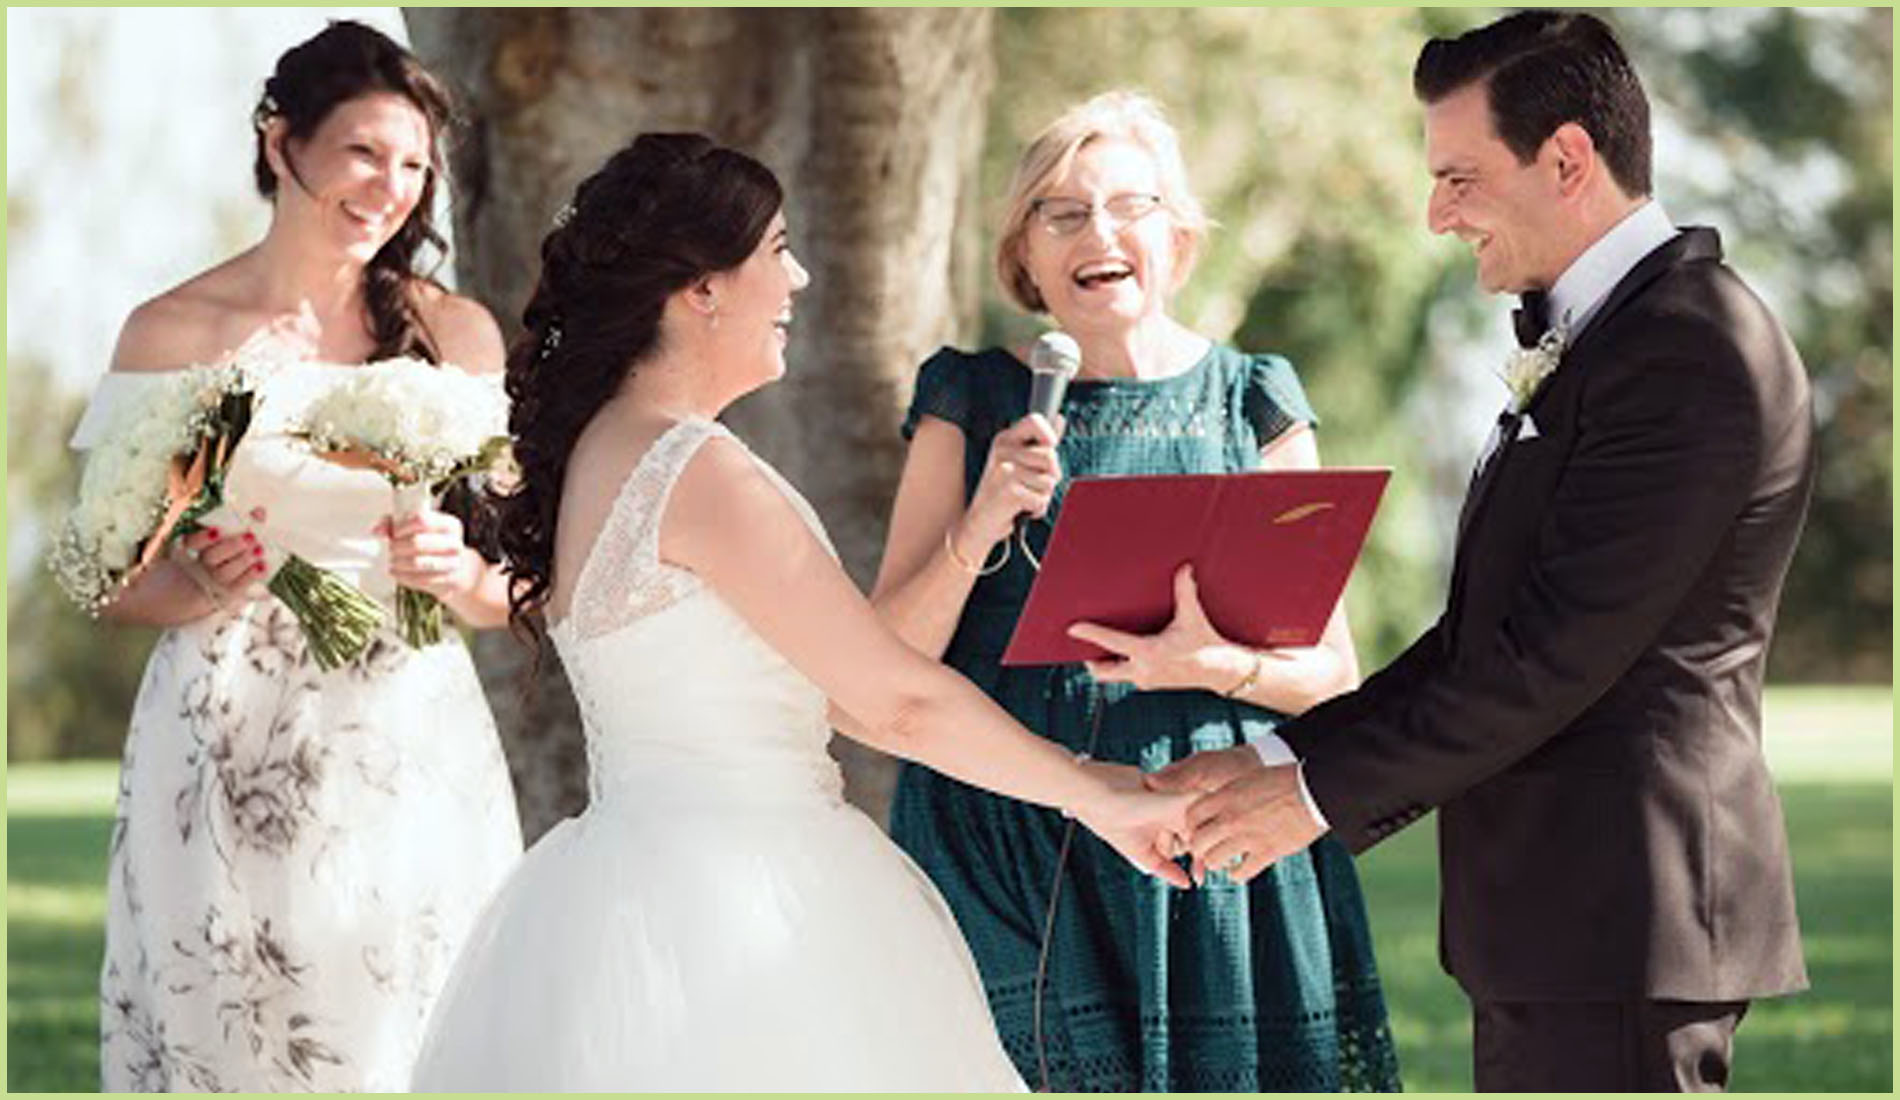 Contact Brisbane Wedding Celebrant Bronwyn Saleh